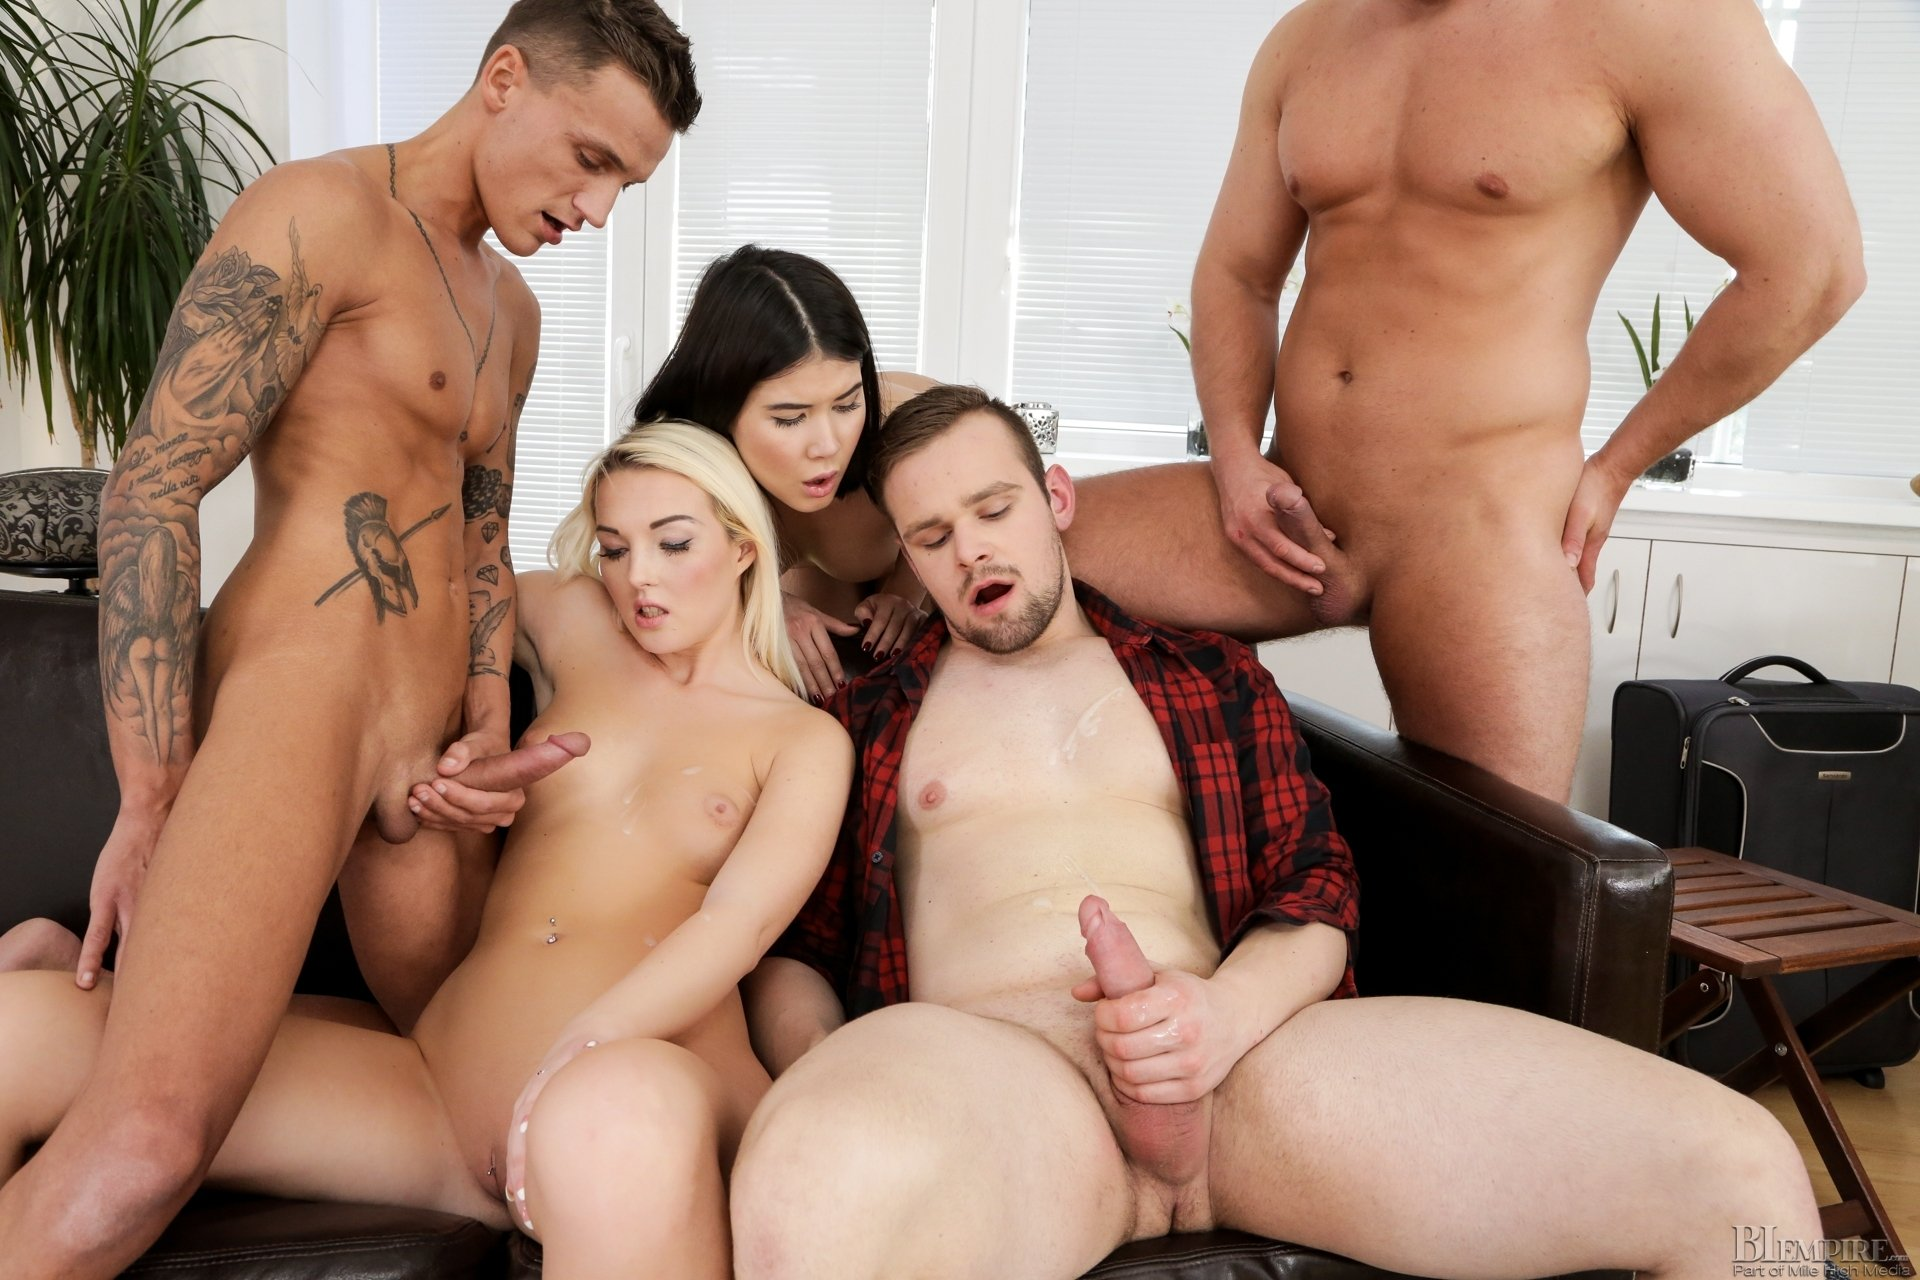 girlsway free porn movies fat white bubble butt